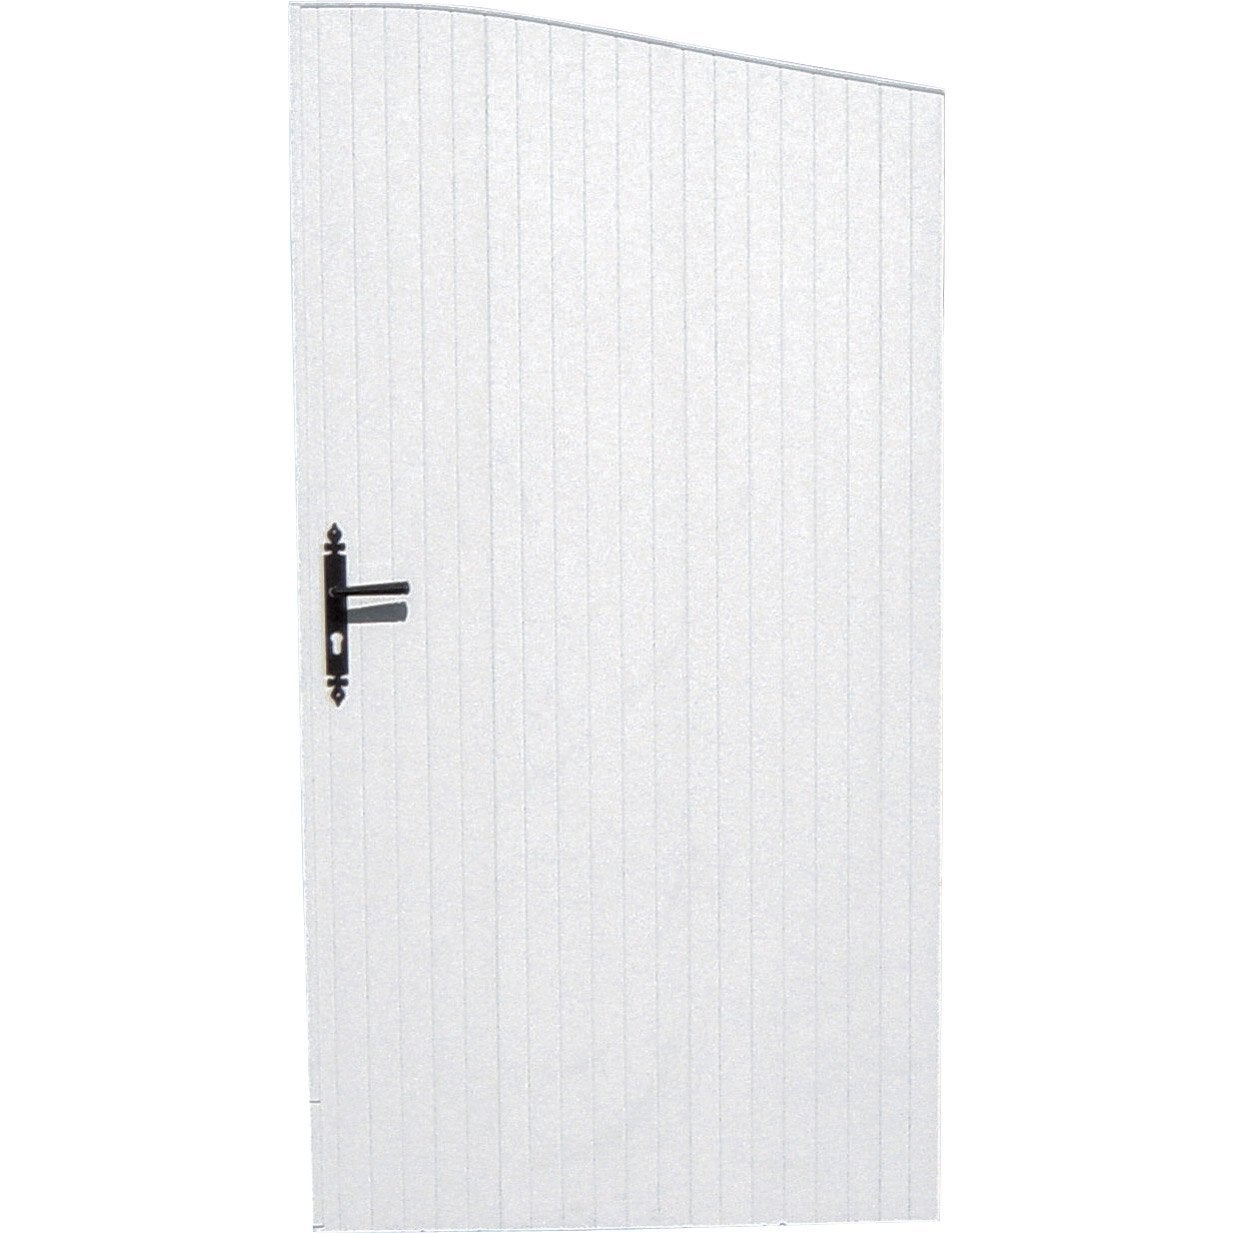 Portillon battant quiberon x cm blanc leroy for Portillon jardin pas cher